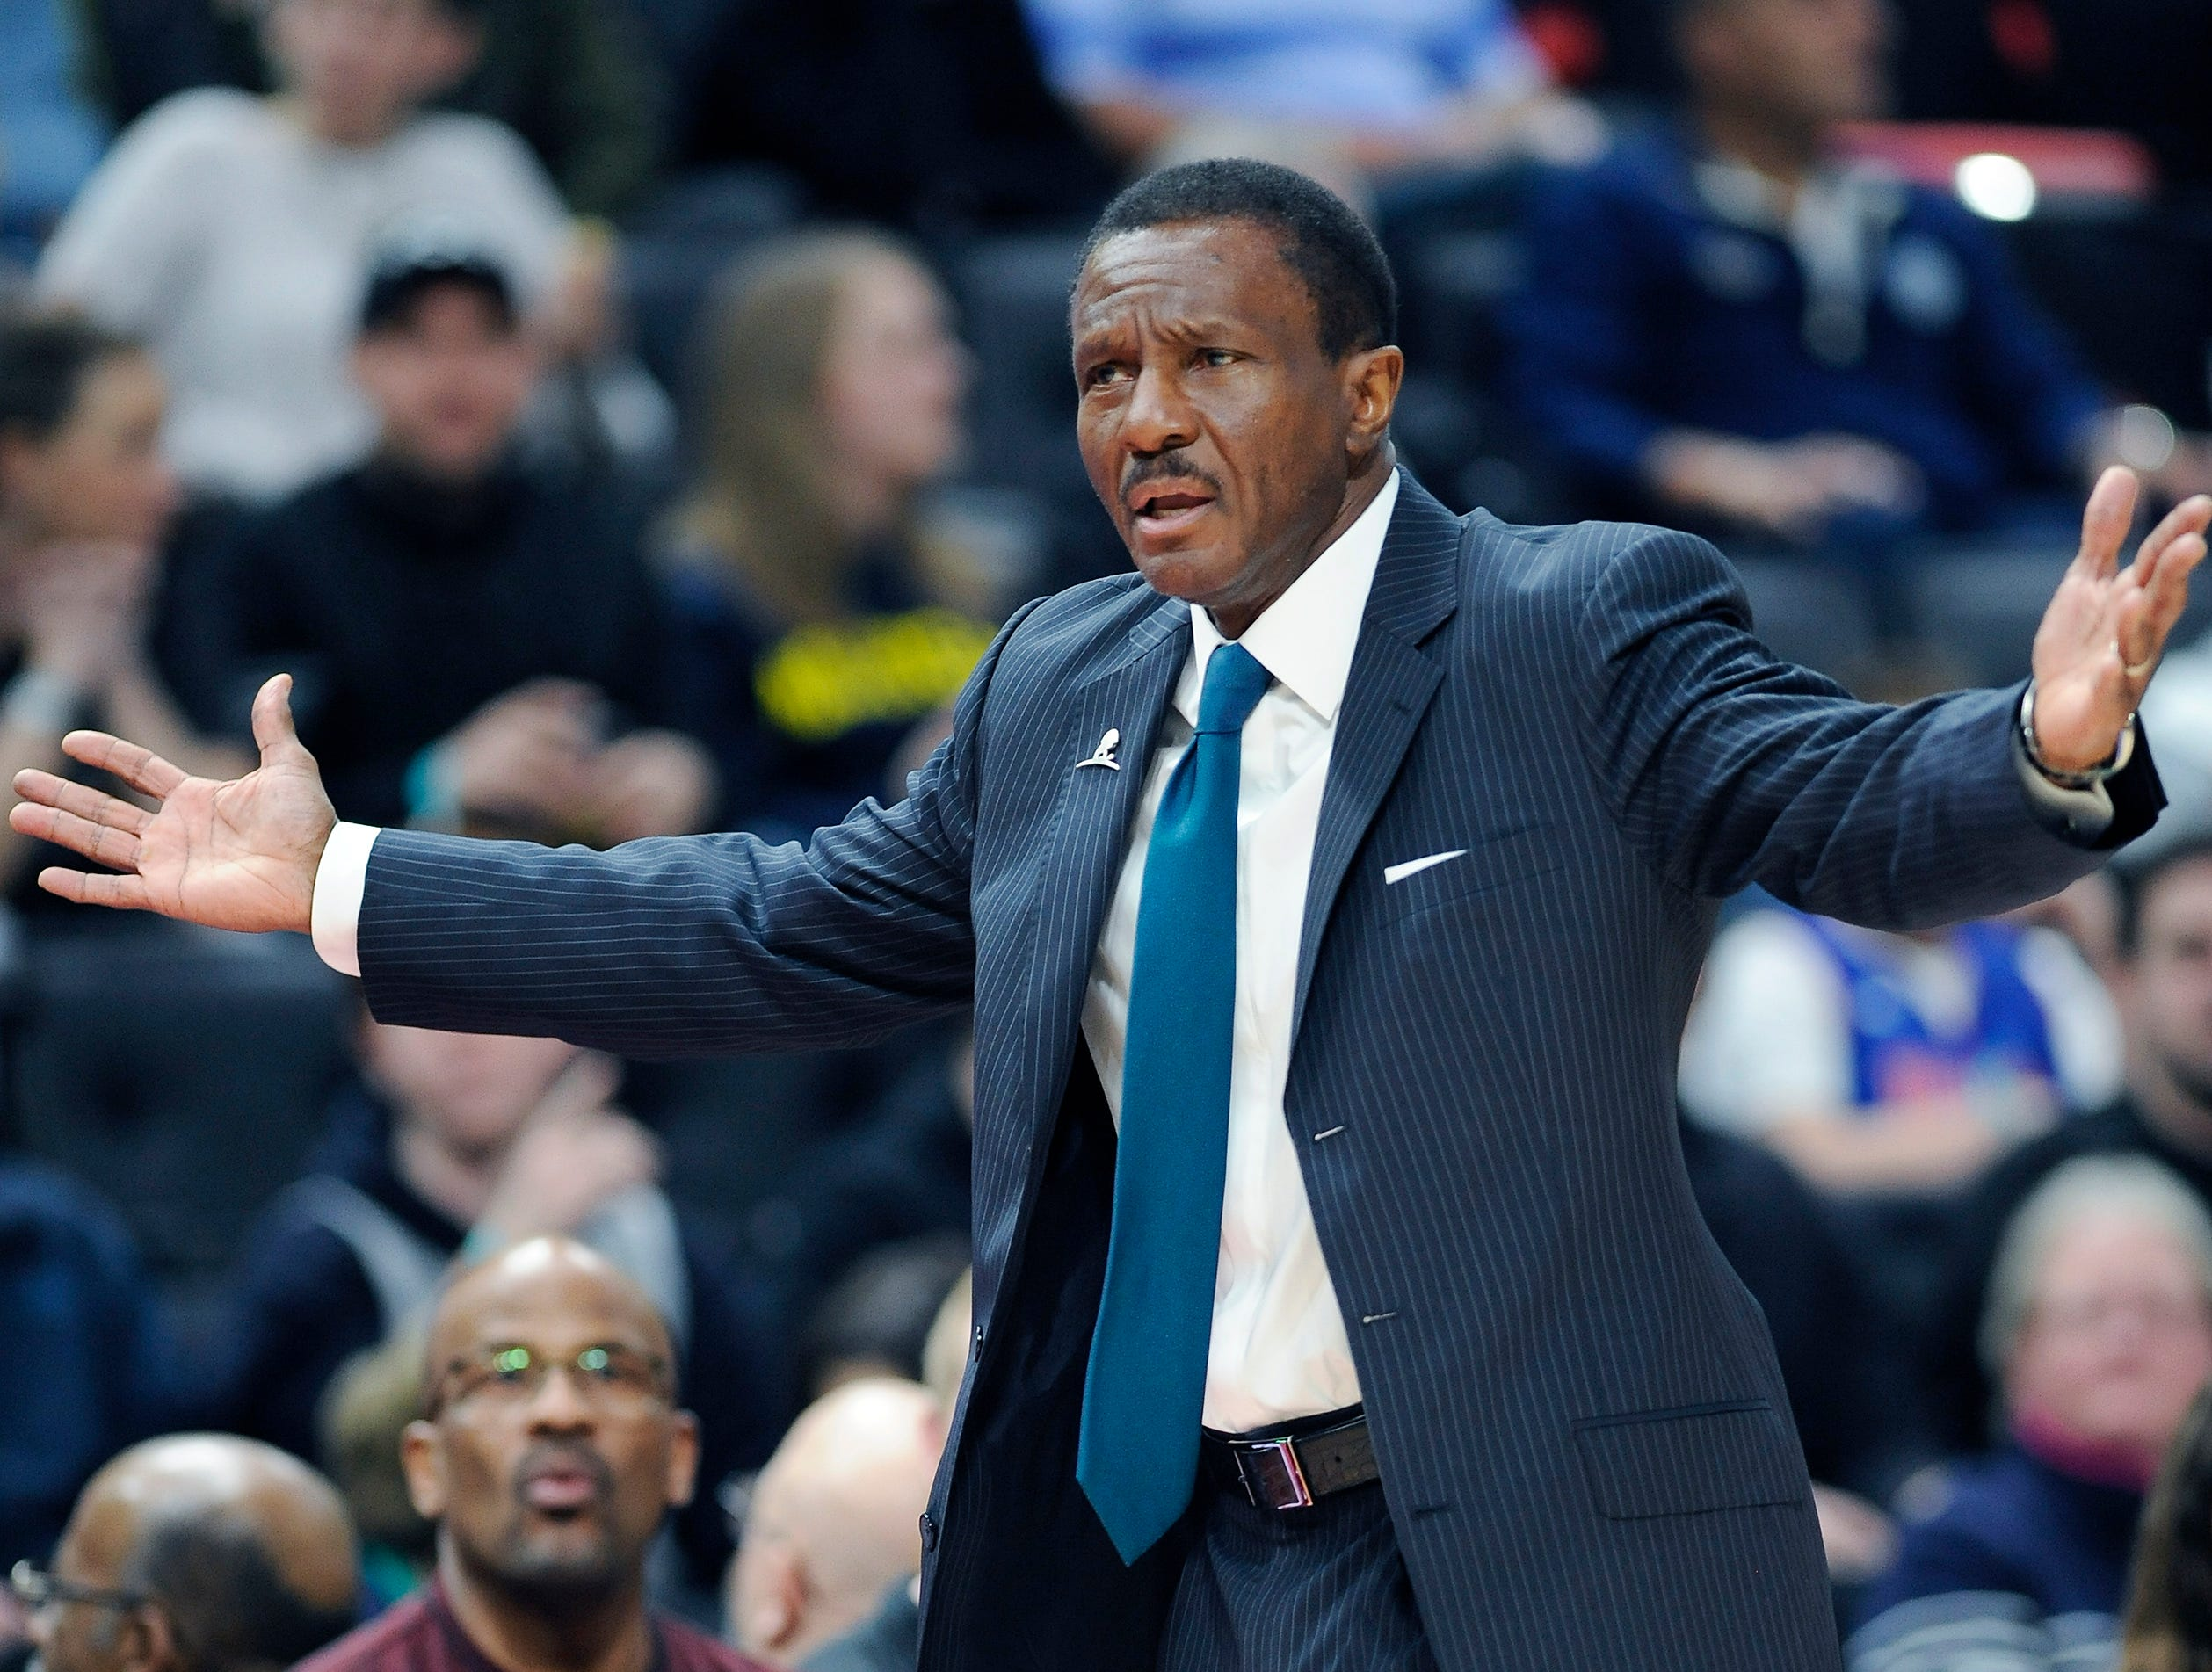 Pistons head coach Dwane Casey complaints about a non-call foul on Andre Drummond in the second quarter.